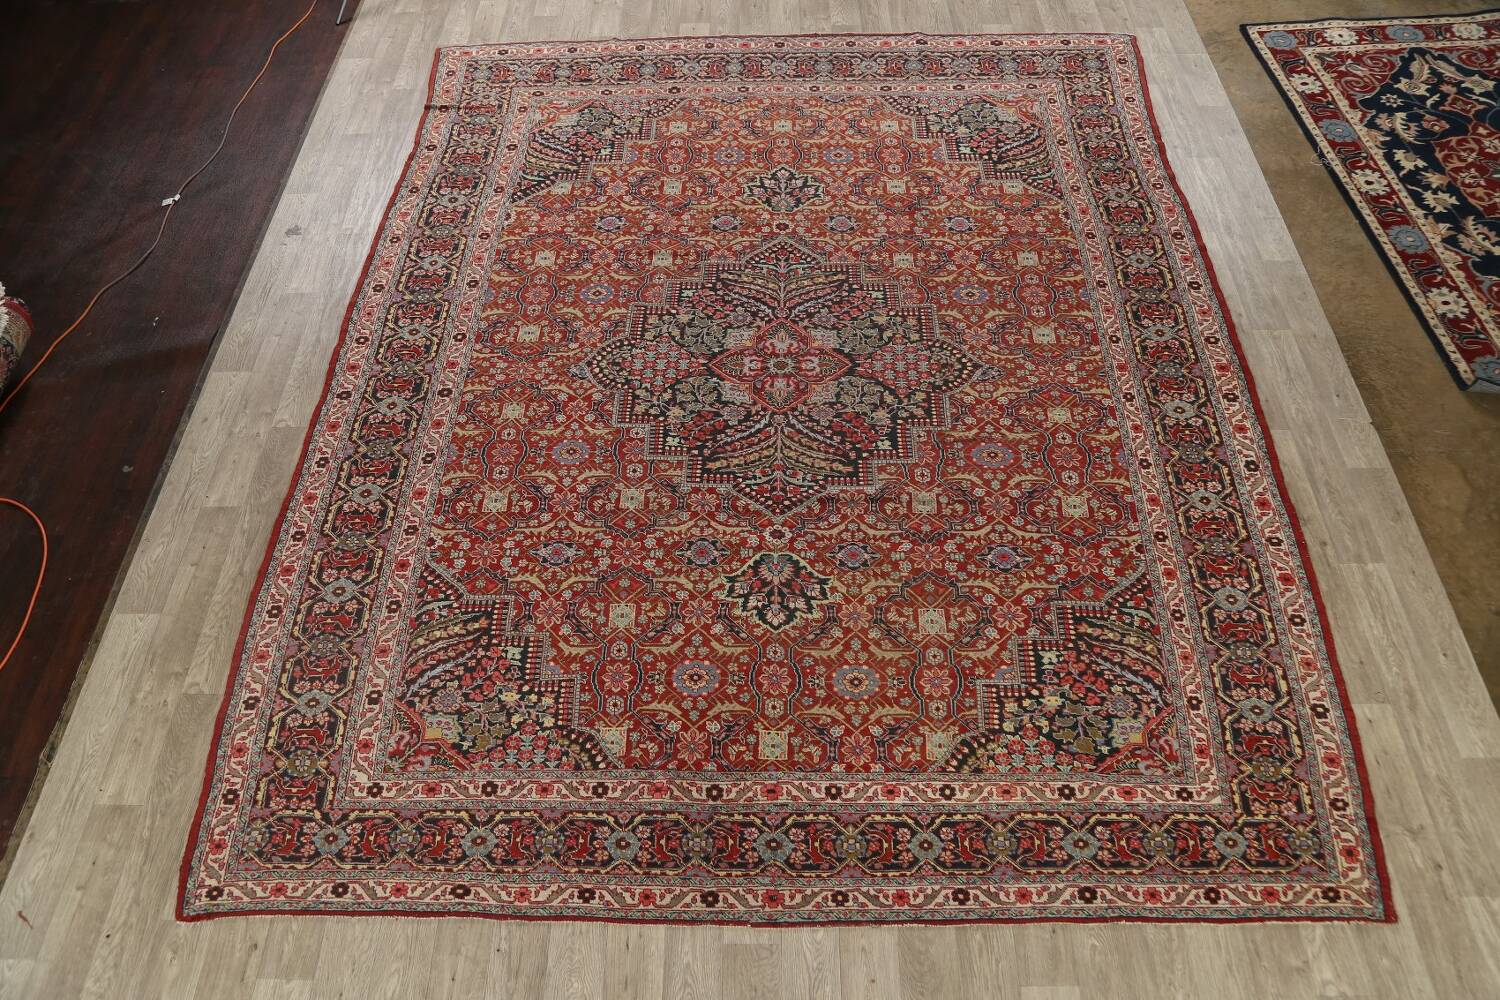 Pre-1900 Antique Sultanabad Persian Area Rug 11x13 Large image 2